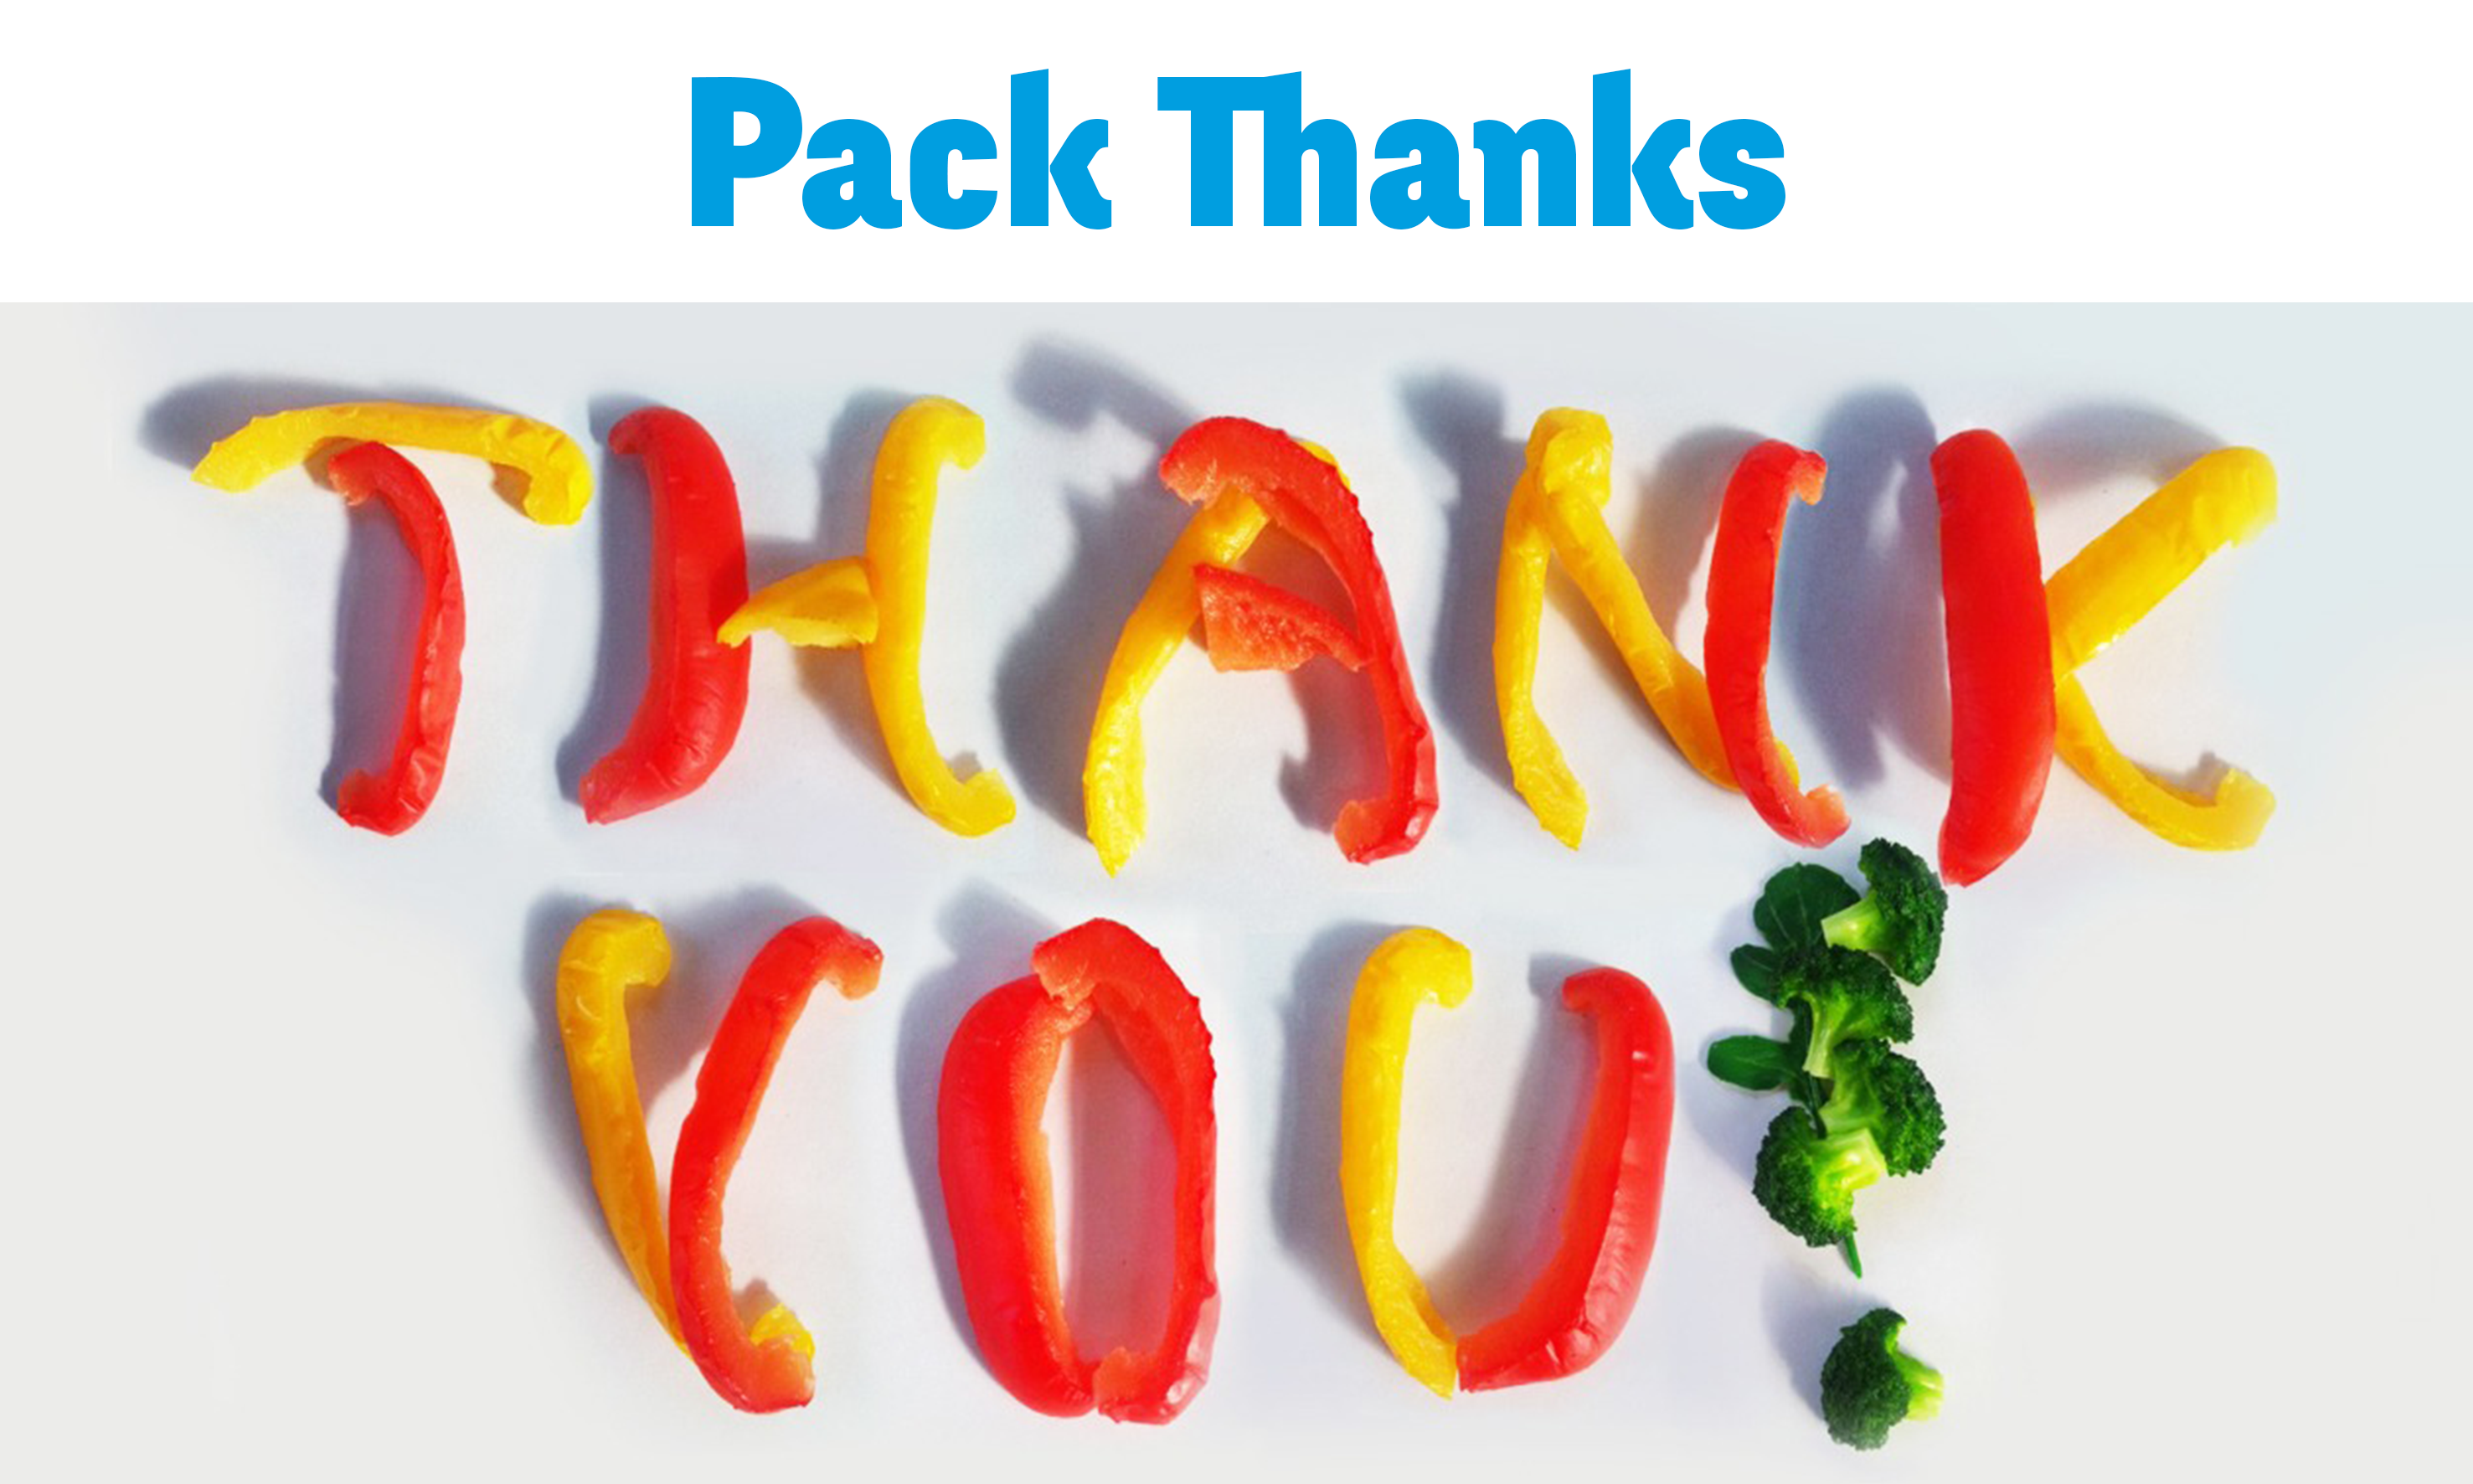 Pack_Thanks-1464559852.png